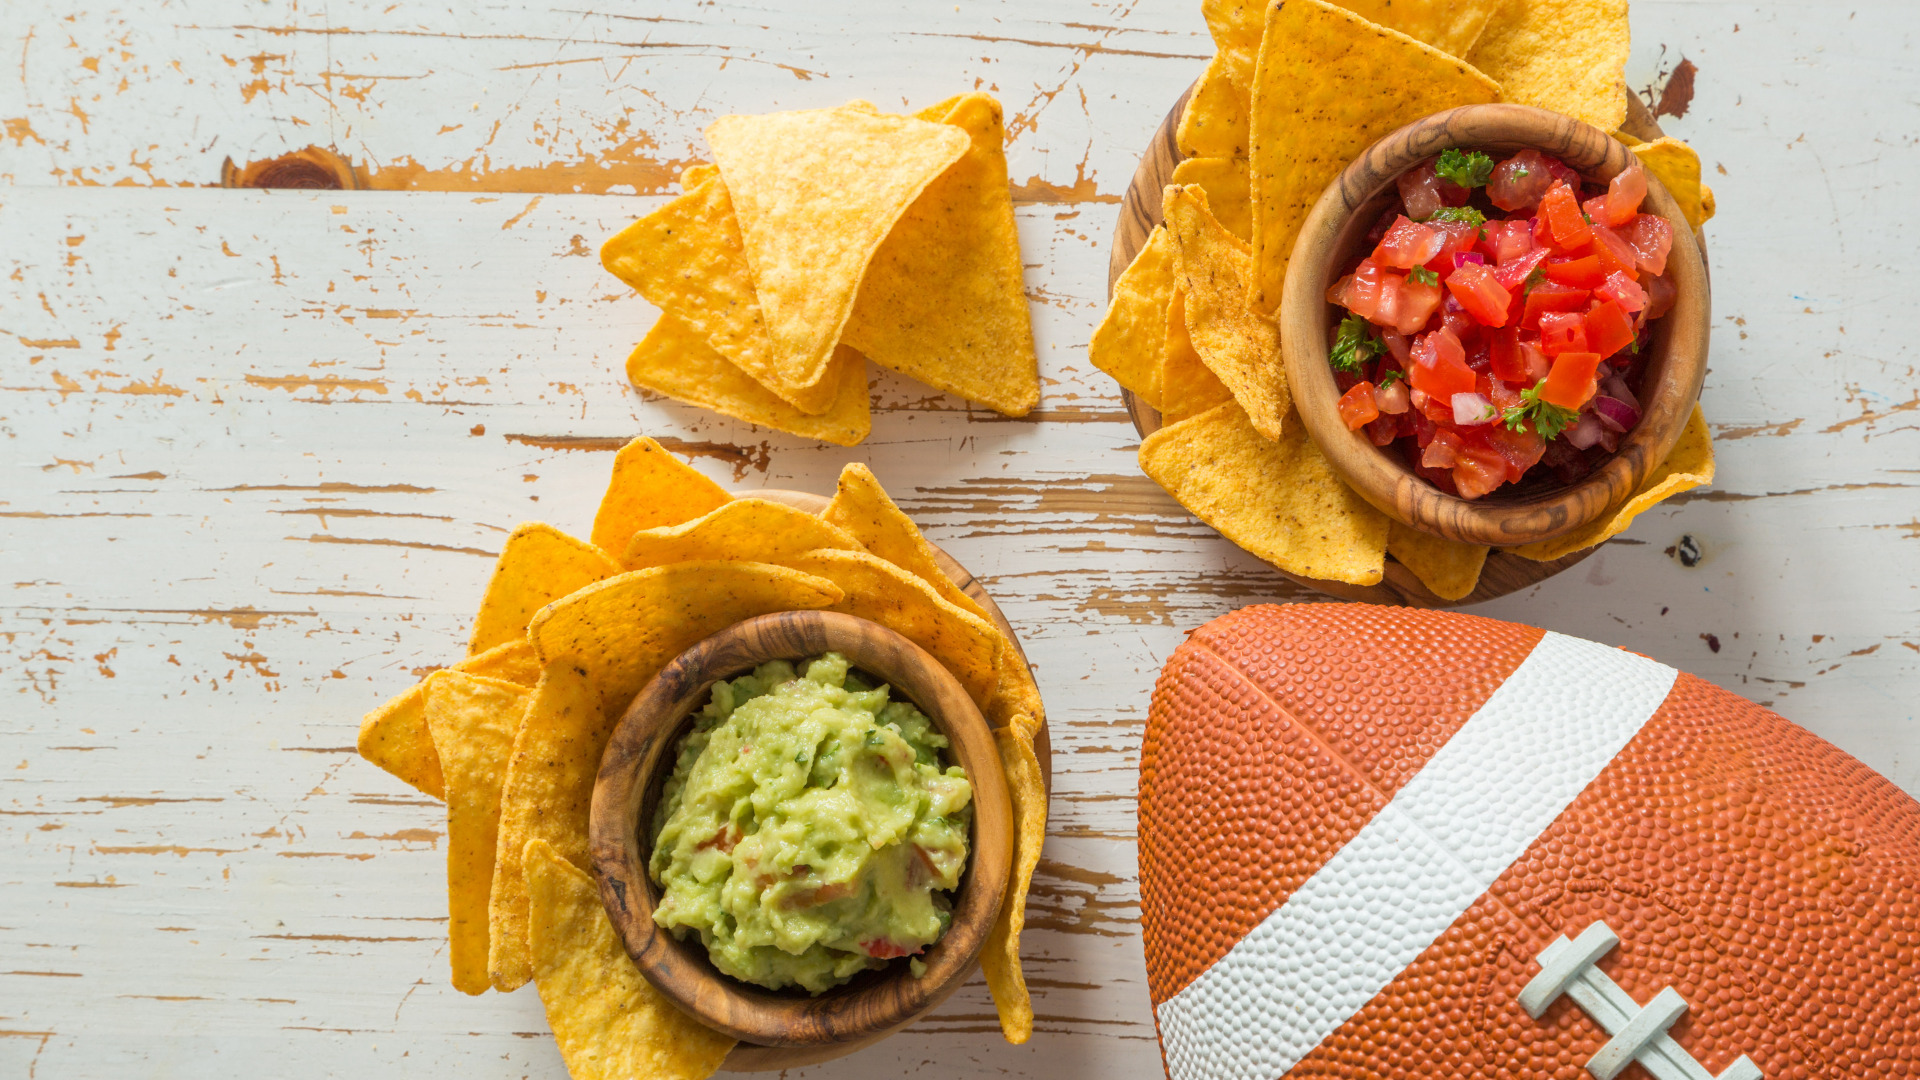 3 Tips & Tricks for Super Bowl Sunday!